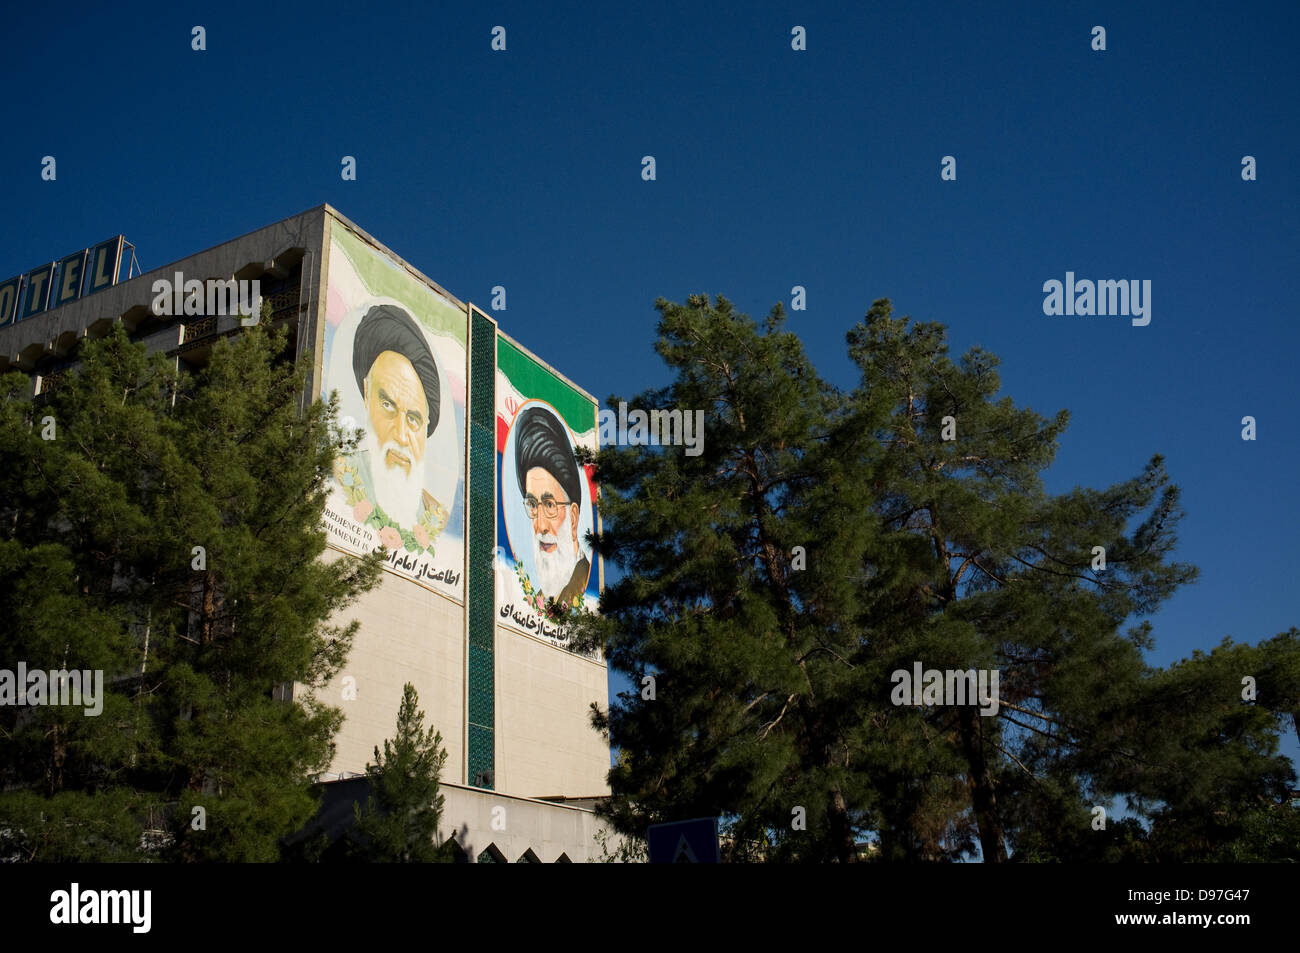 24/05/2013 - Isfahan. The images of the leader of the Iranian Revolution Imam Khomeini and the Supreme Leader Ali - Stock Image